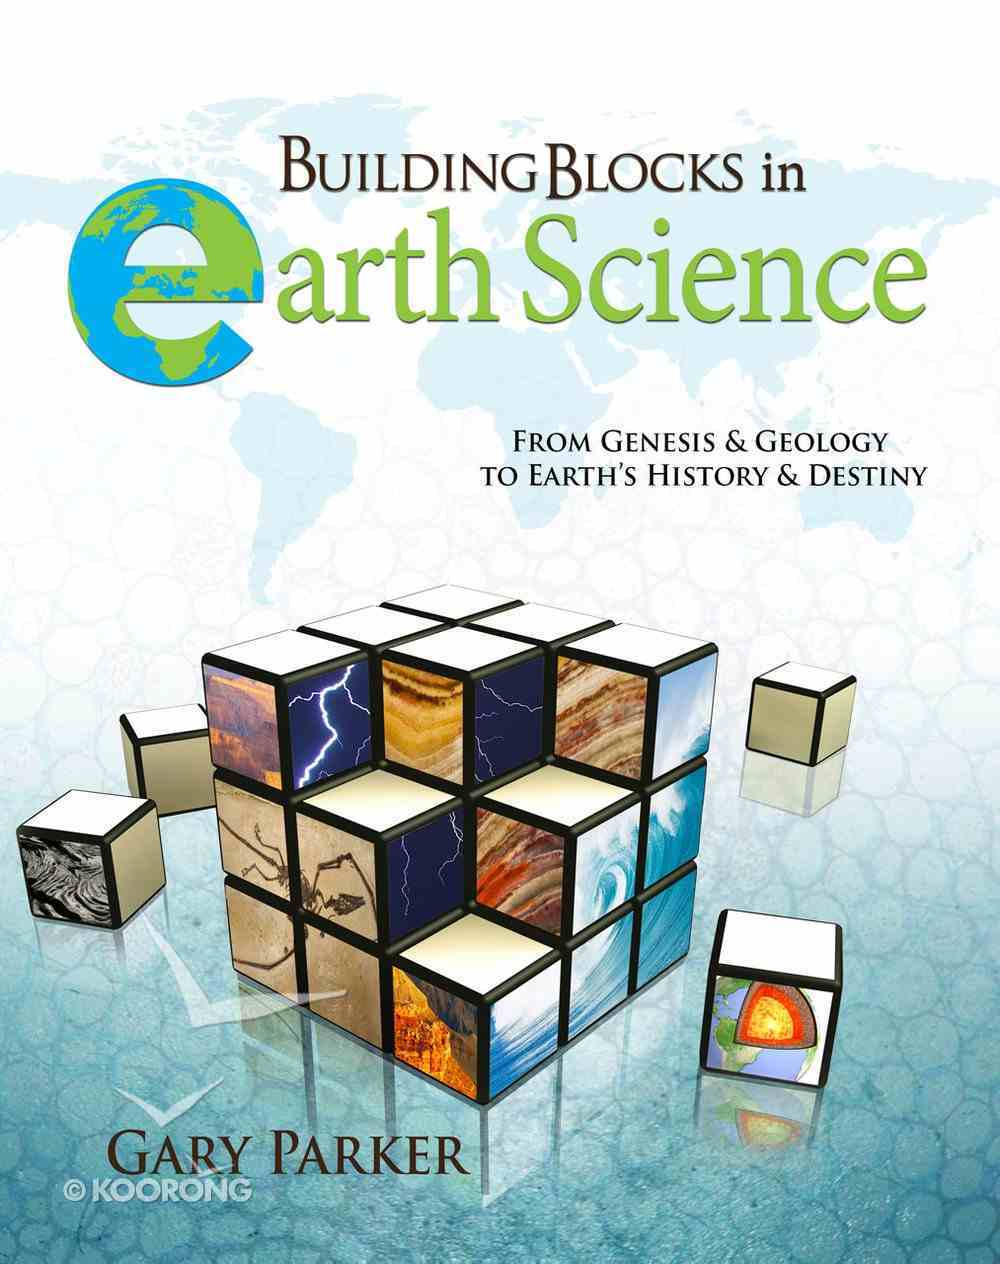 Building Blocks in Earth Science: From Genesis & Geology to Earth's History & Destiny Paperback